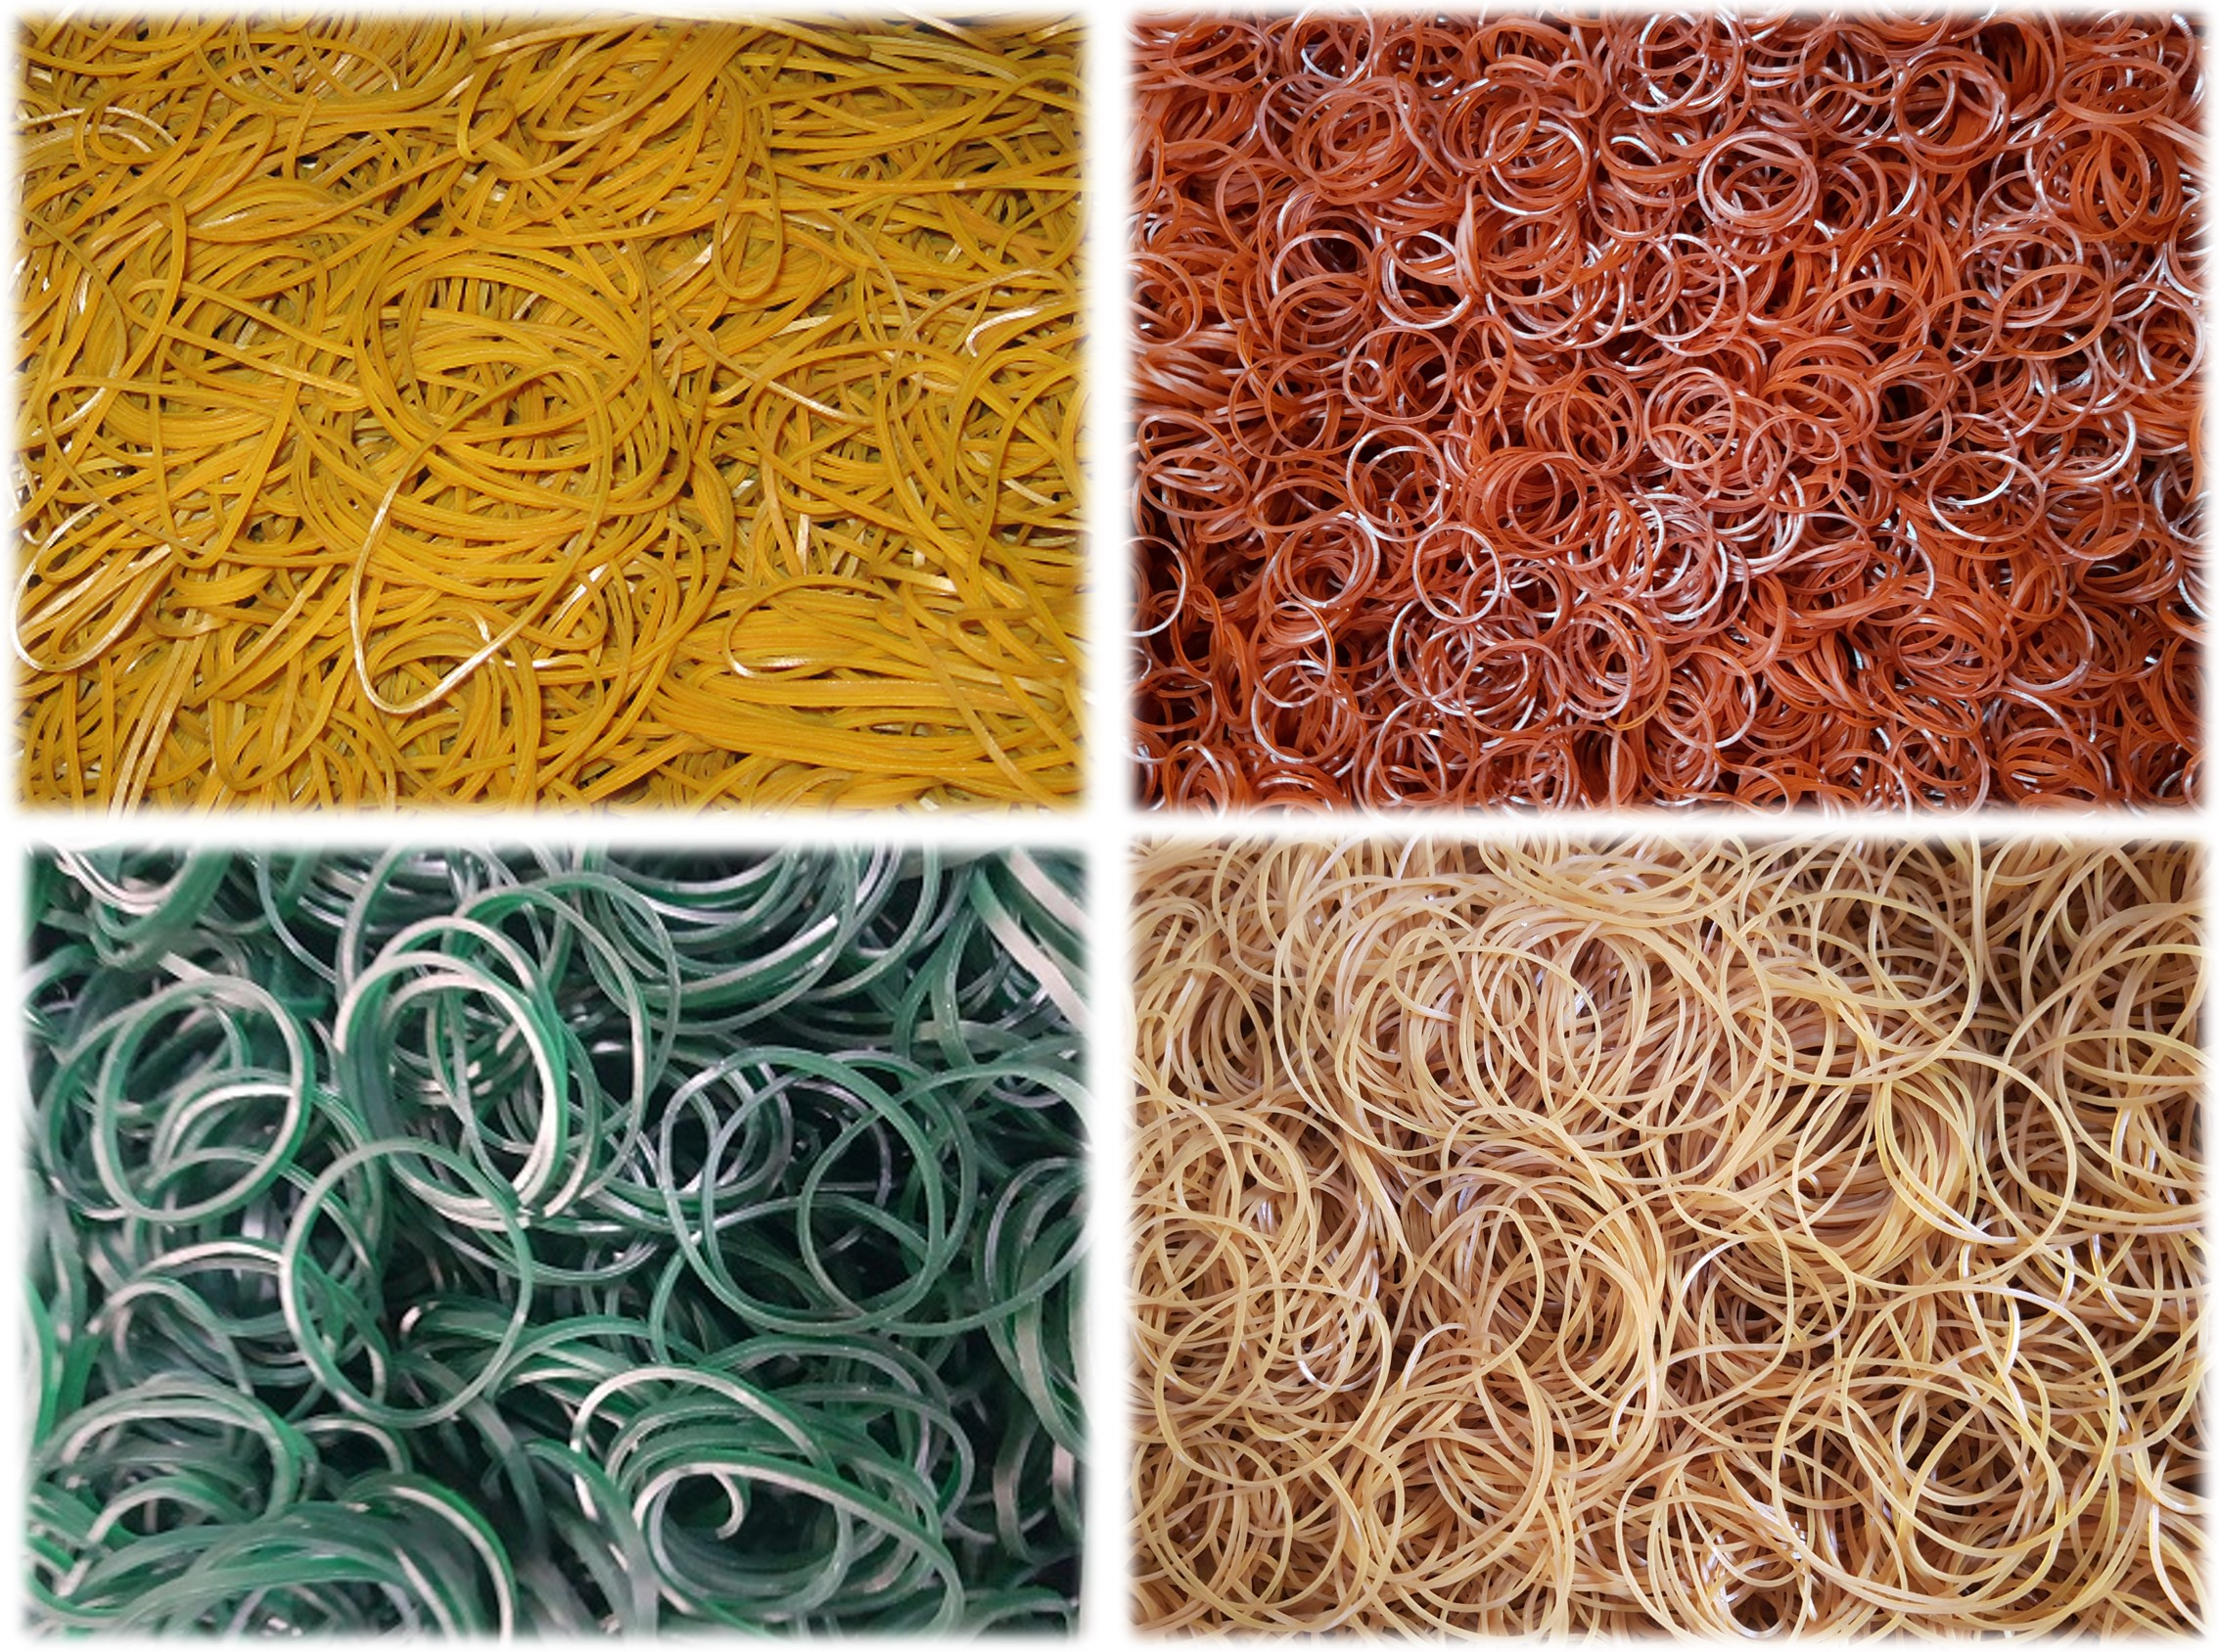 rubber bands, natural rubber bands, crepe rubber bands, rubber band